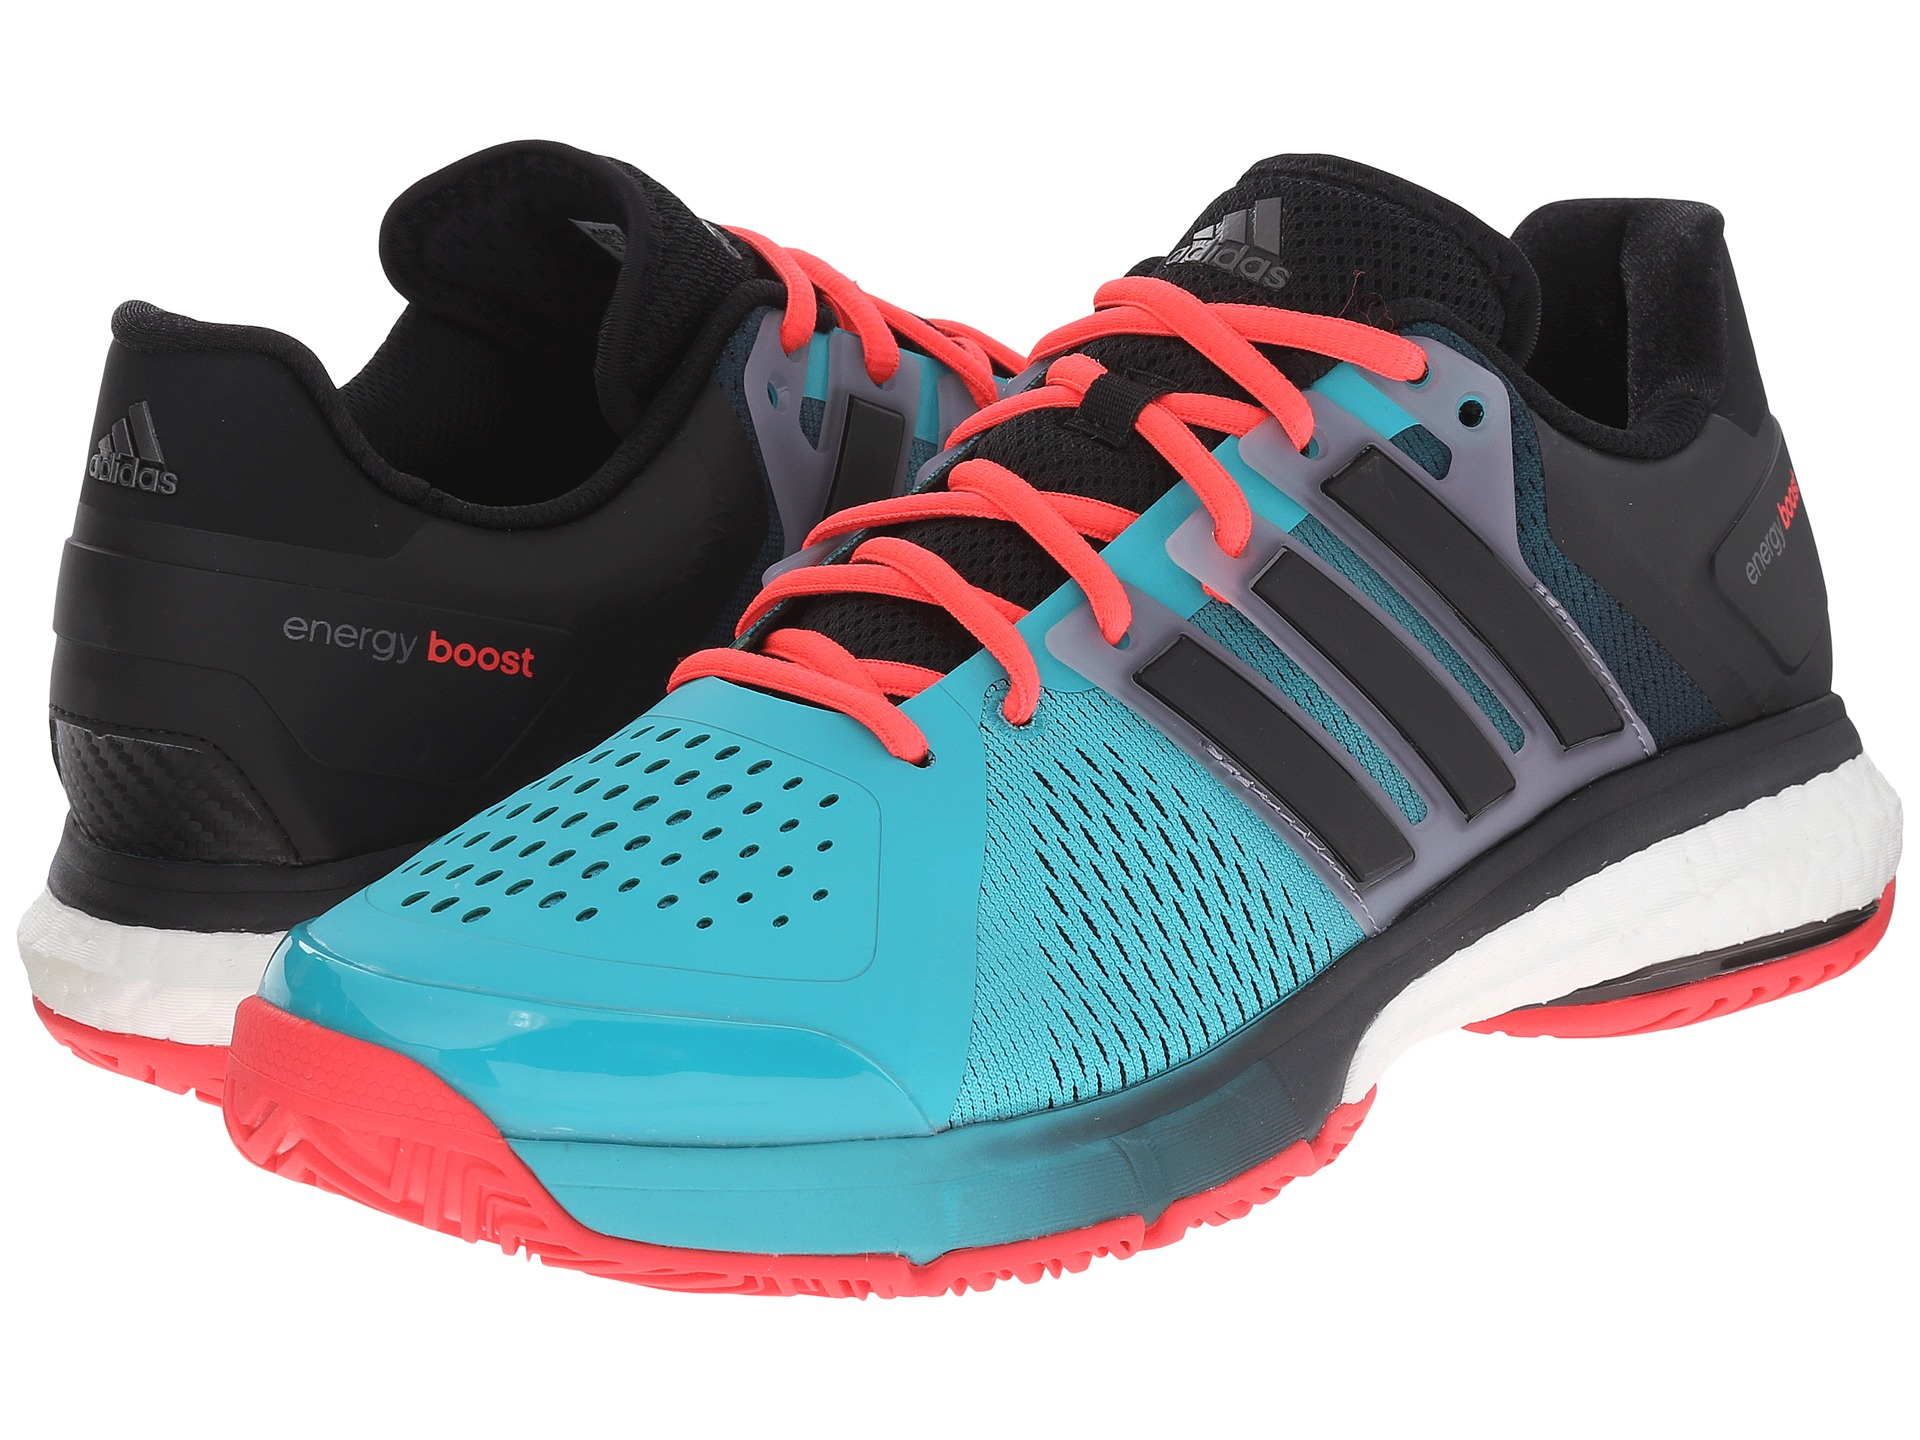 adidas Tennis Energy Boost at 6pm.com